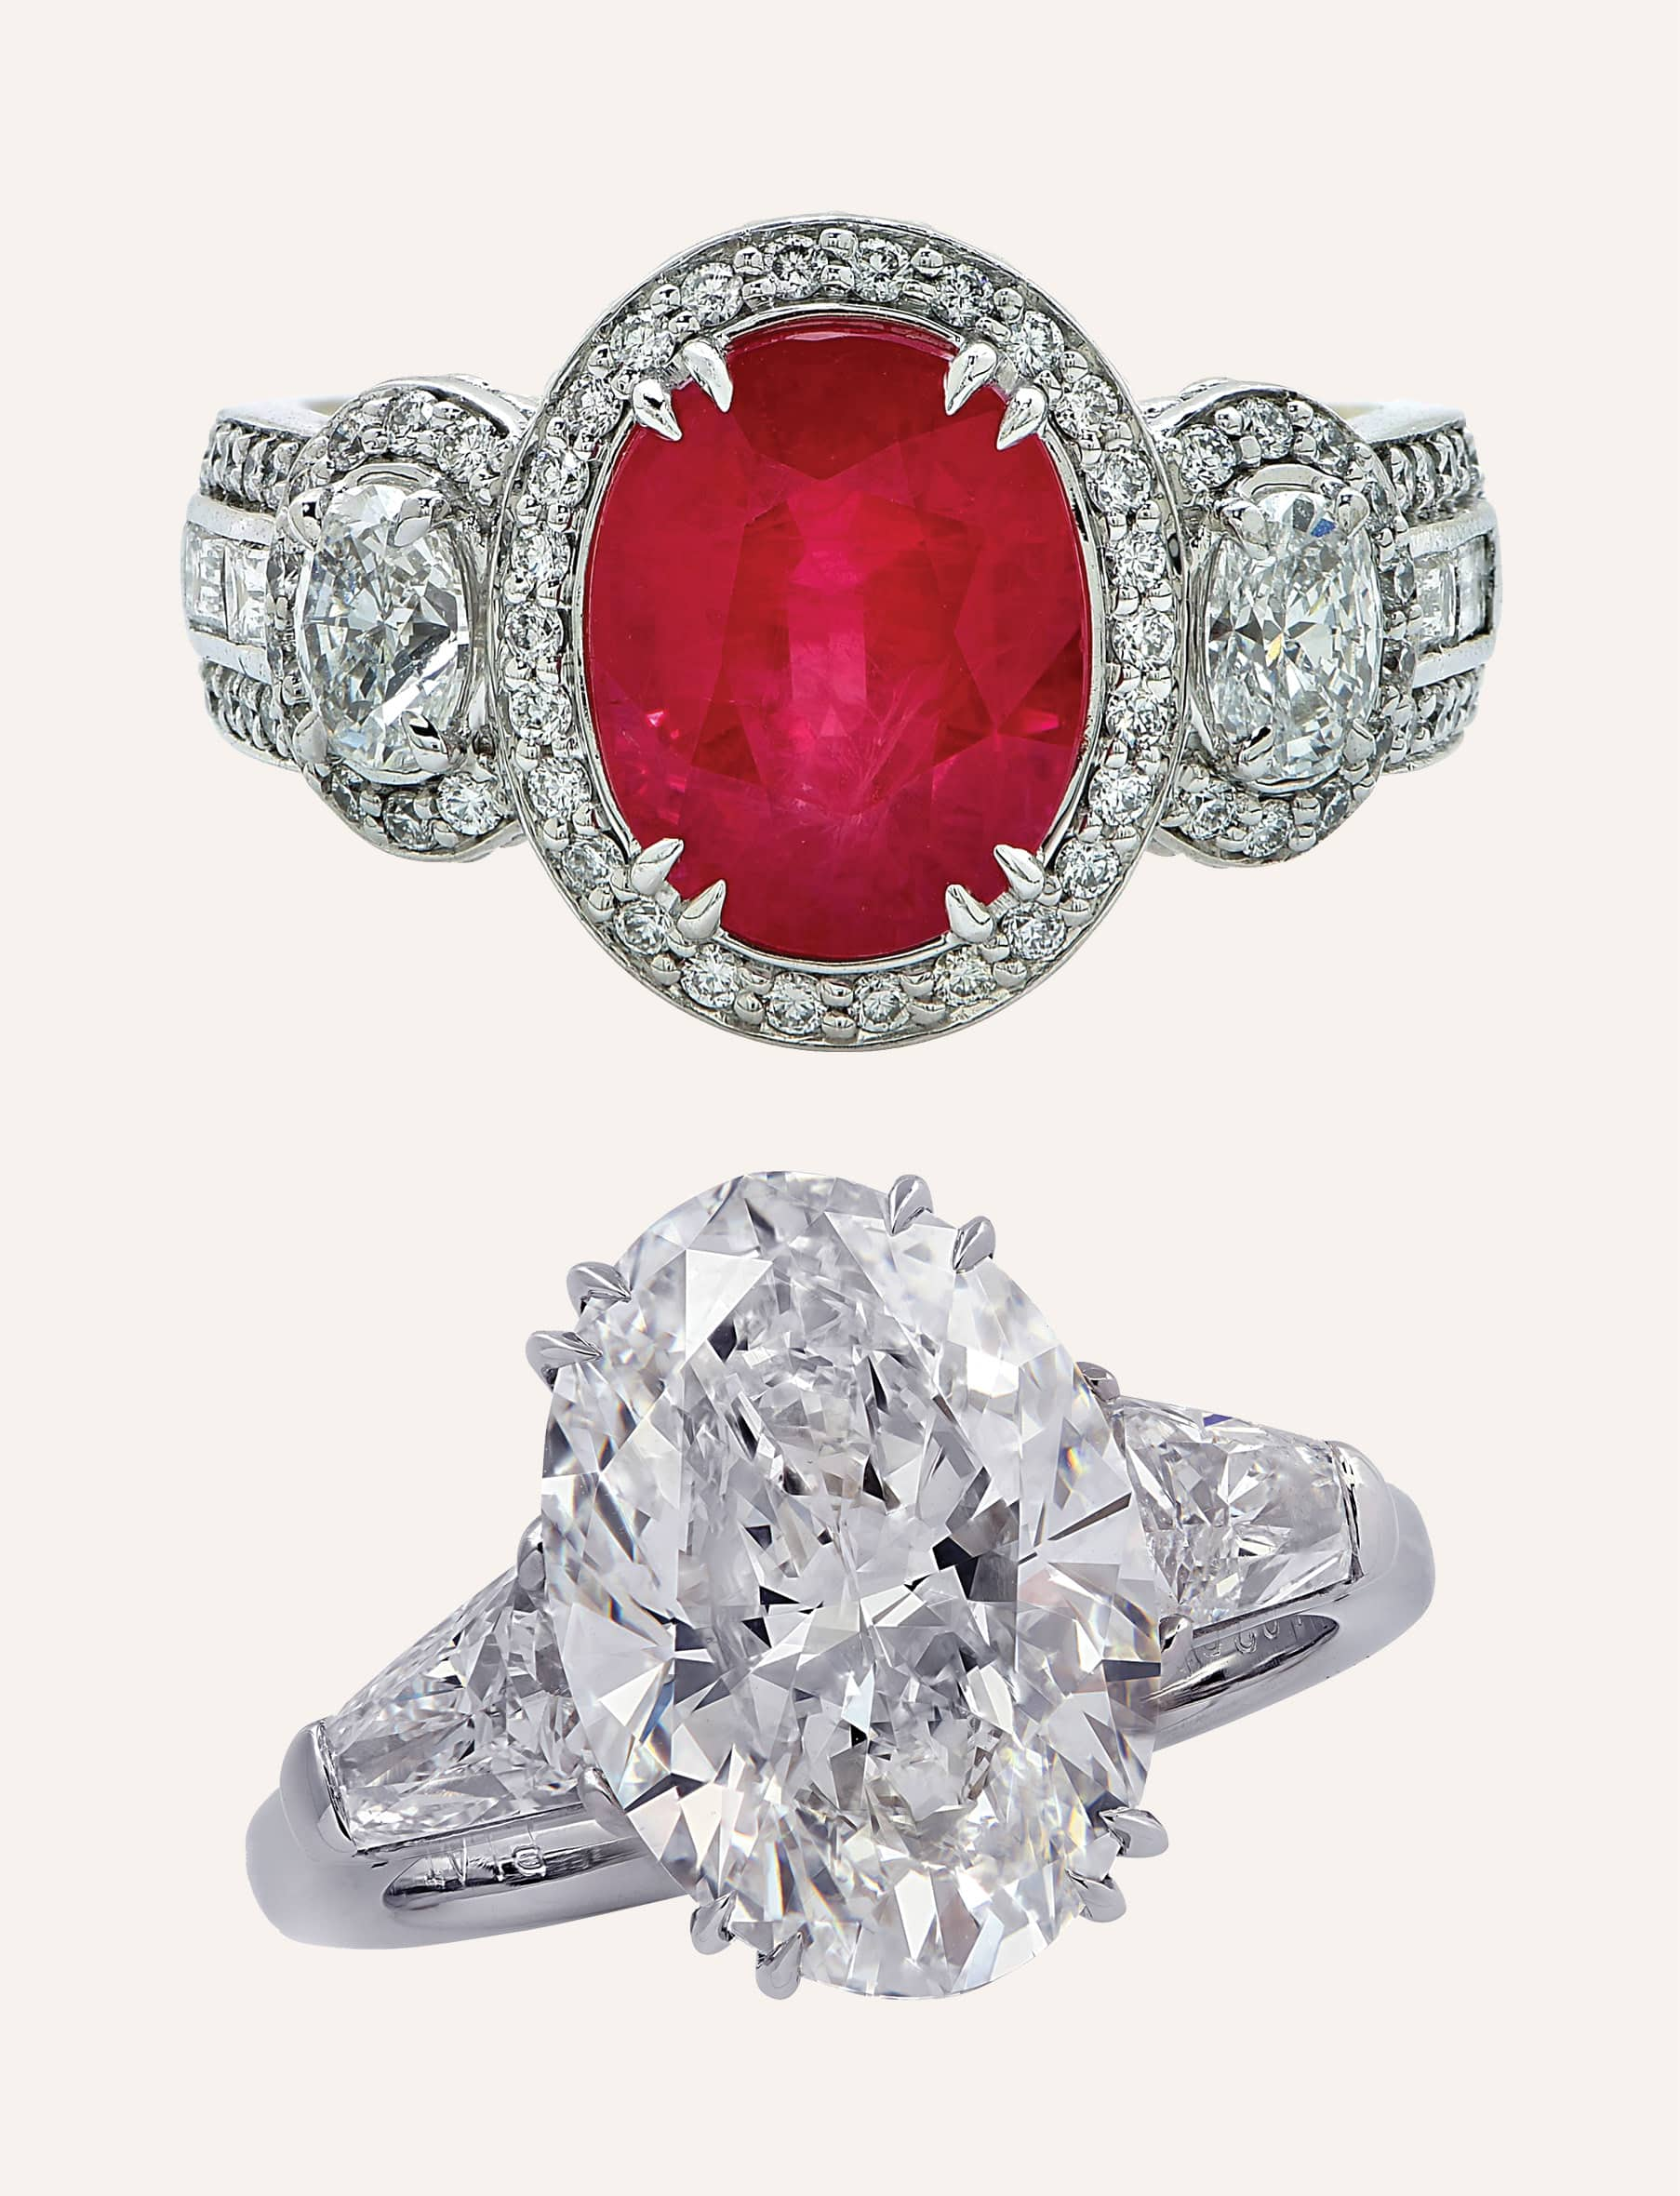 Above: 3.50-carat ruby and diamond ring, 21st century; below: 5.02-carat oval ring, 2020